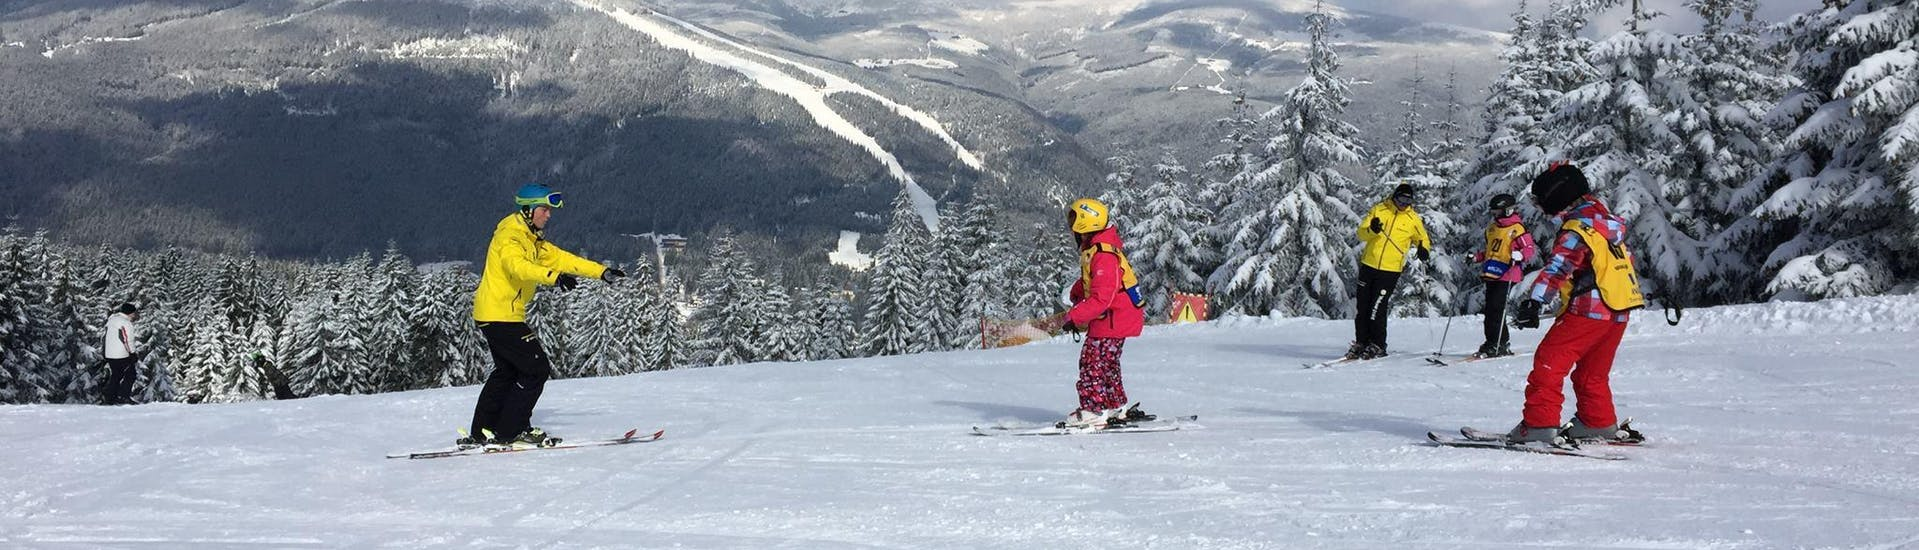 Ski Lessons for Kids (from 4 years) - Beginner